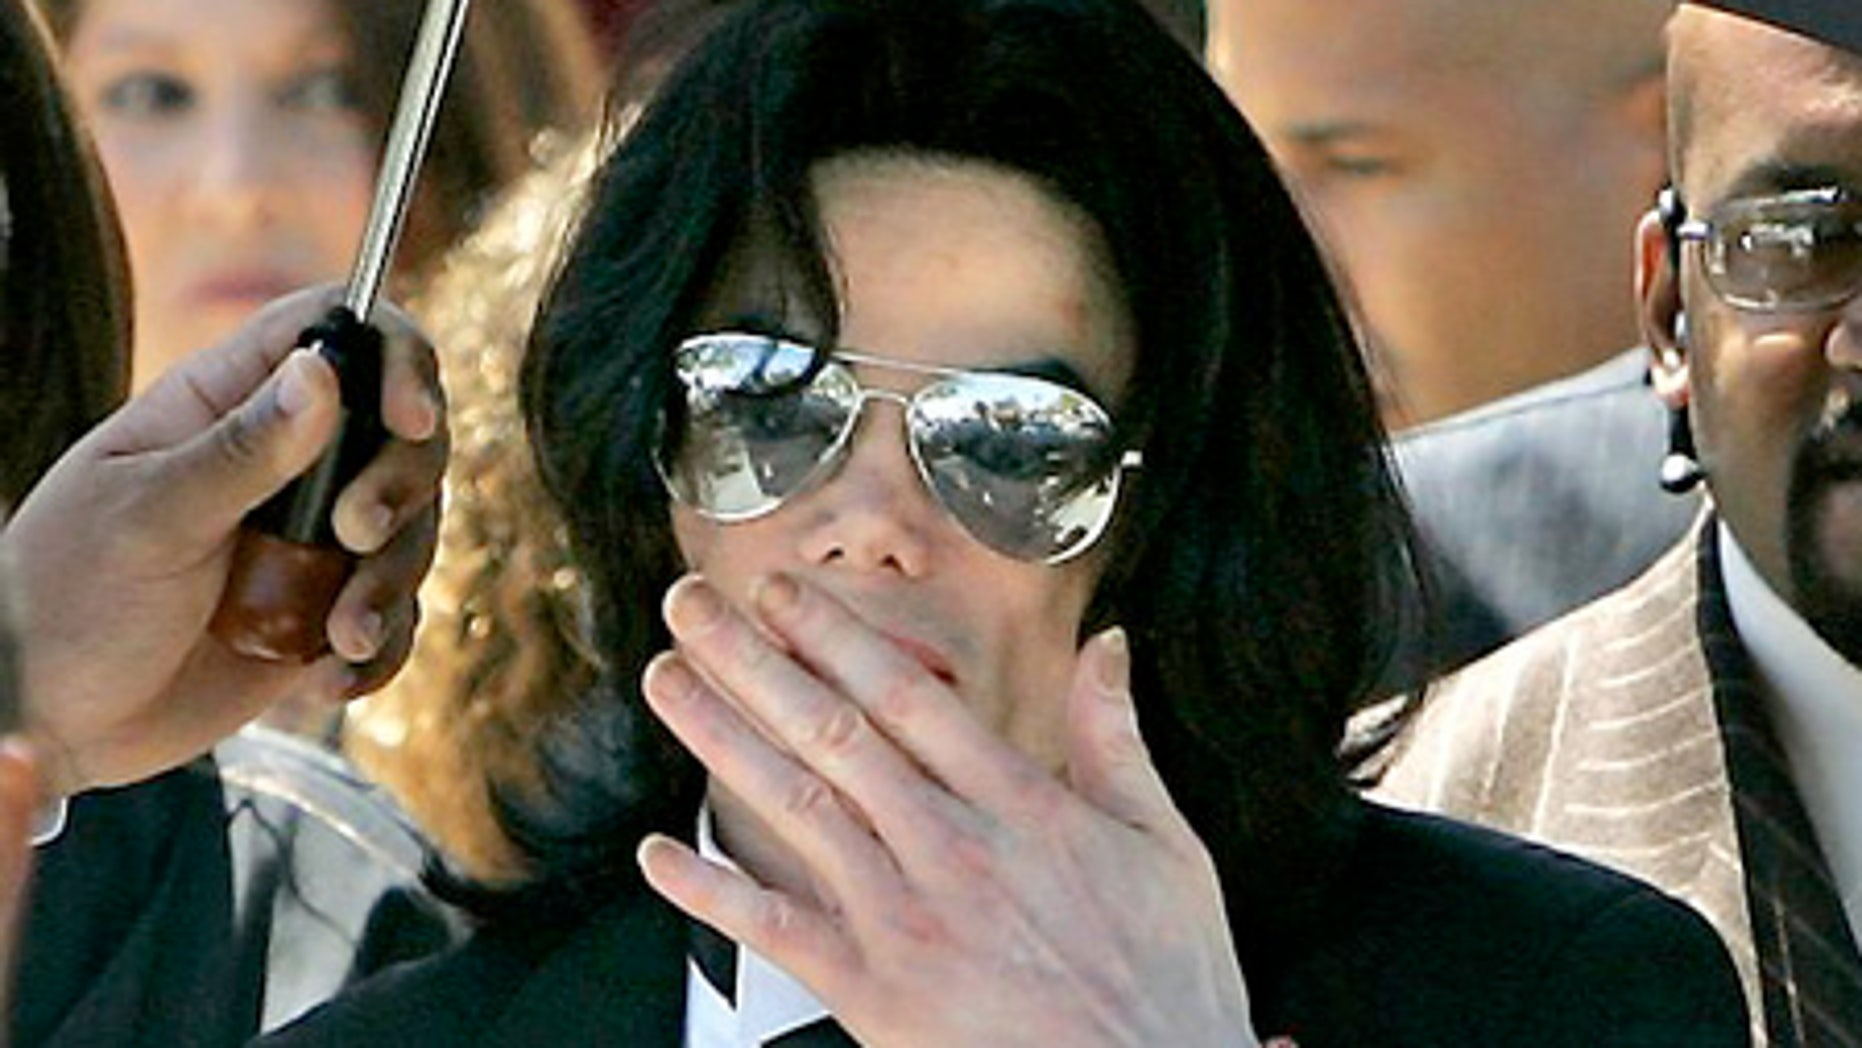 June 13, 2005: Michael Jackson blows a kiss to his fans as he leaves the Santa Barbara County Courthouse in Santa Maria, Calif.